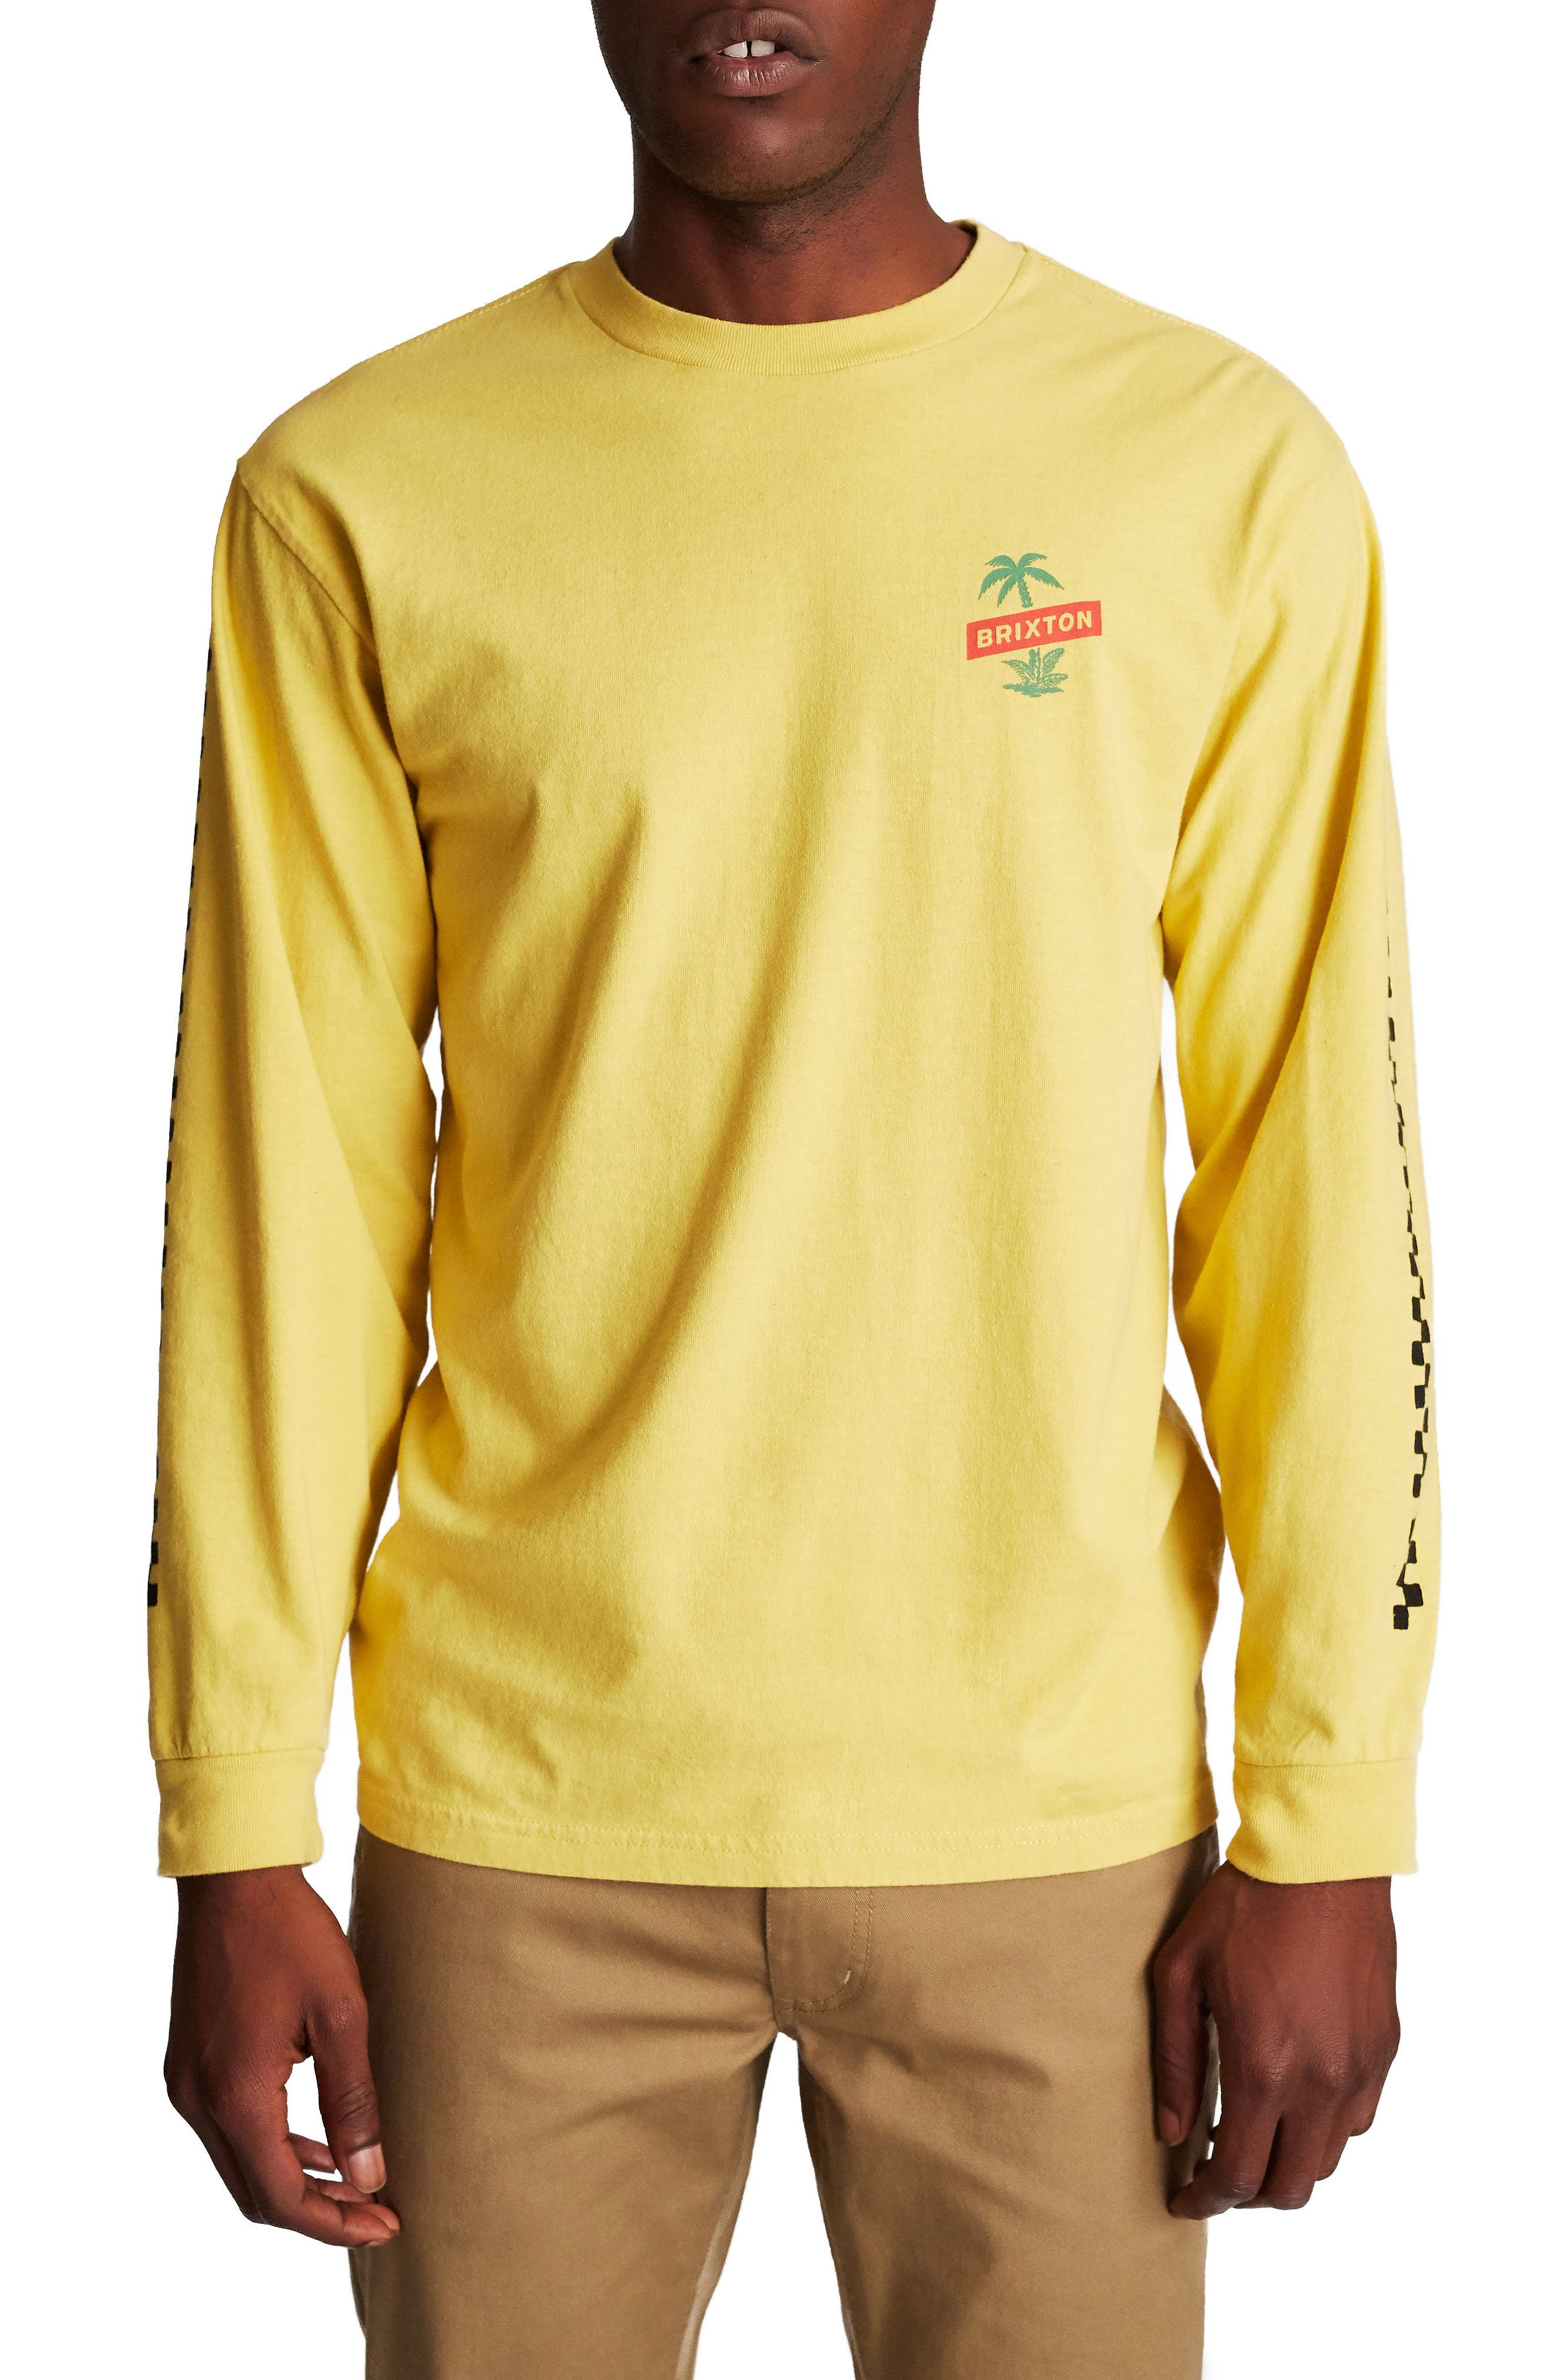 Tosh Long Sleeve T-Shirt,                             Main thumbnail 1, color,                             700